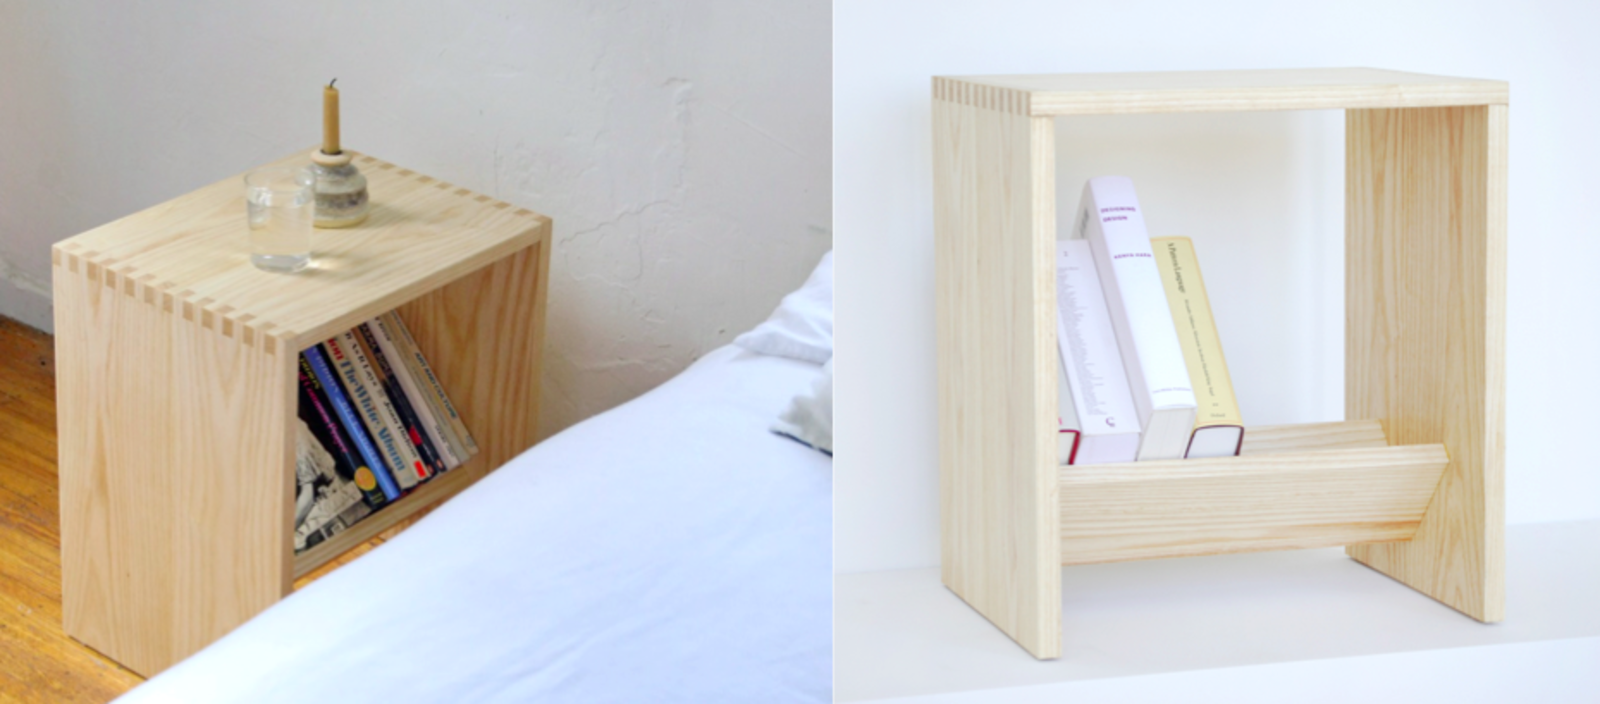 Photo 2 Of 5 In Nightstands We Love By Luke Hopping From A Bibliophile Shares His Book Storage Secrets Dwell